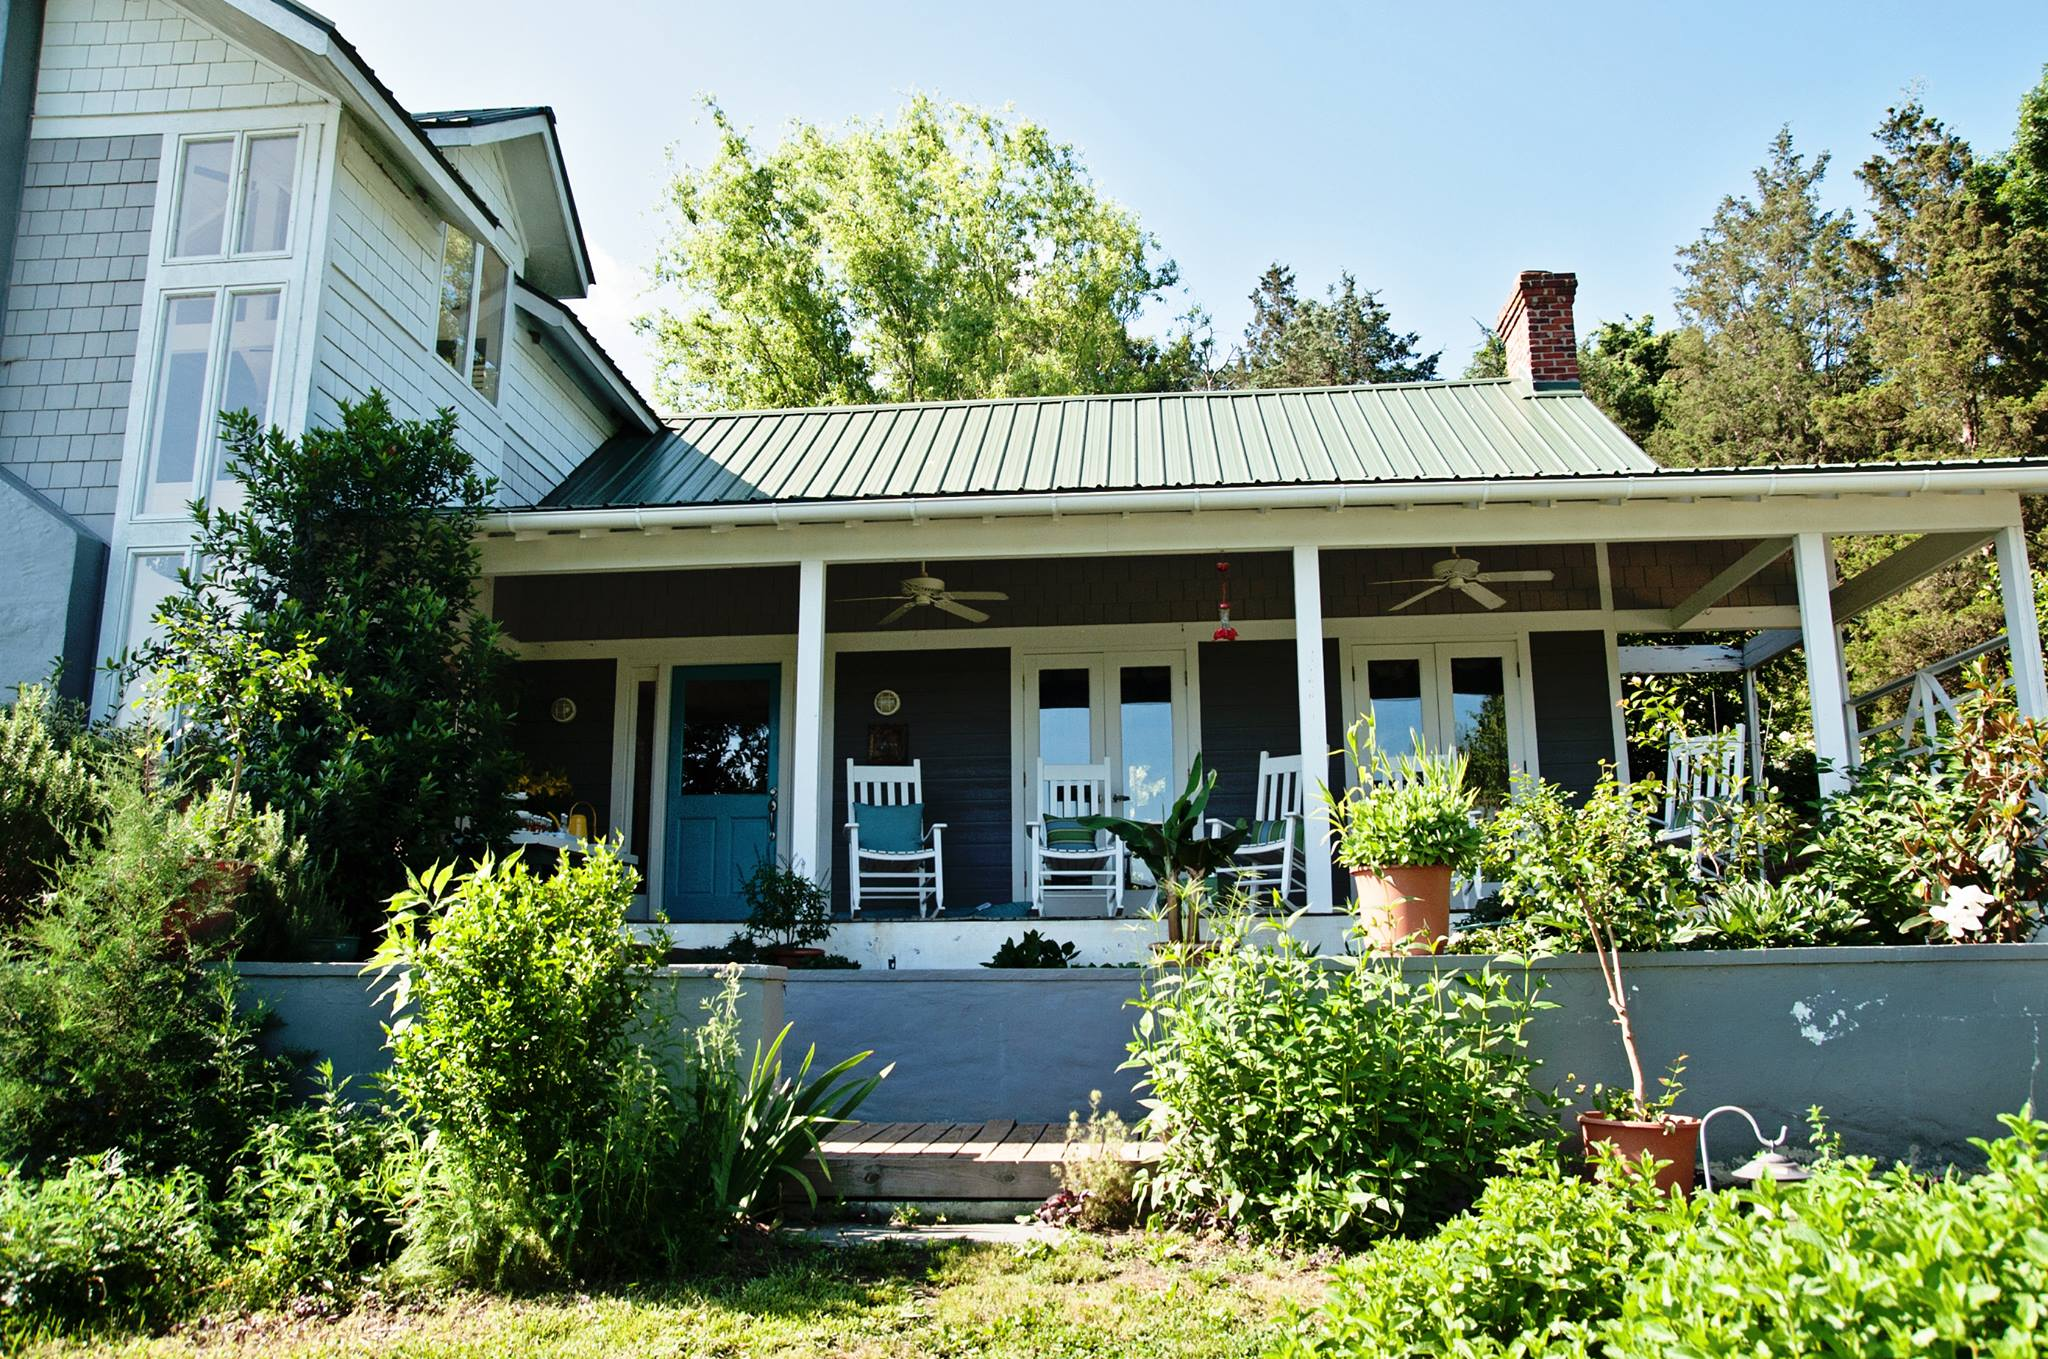 win this sweet organic farm a 200 word essay curbed architect and farm owner norma burns has owned bluebird hill for almost two decades and now she wants to give it away to an organically farming couple in